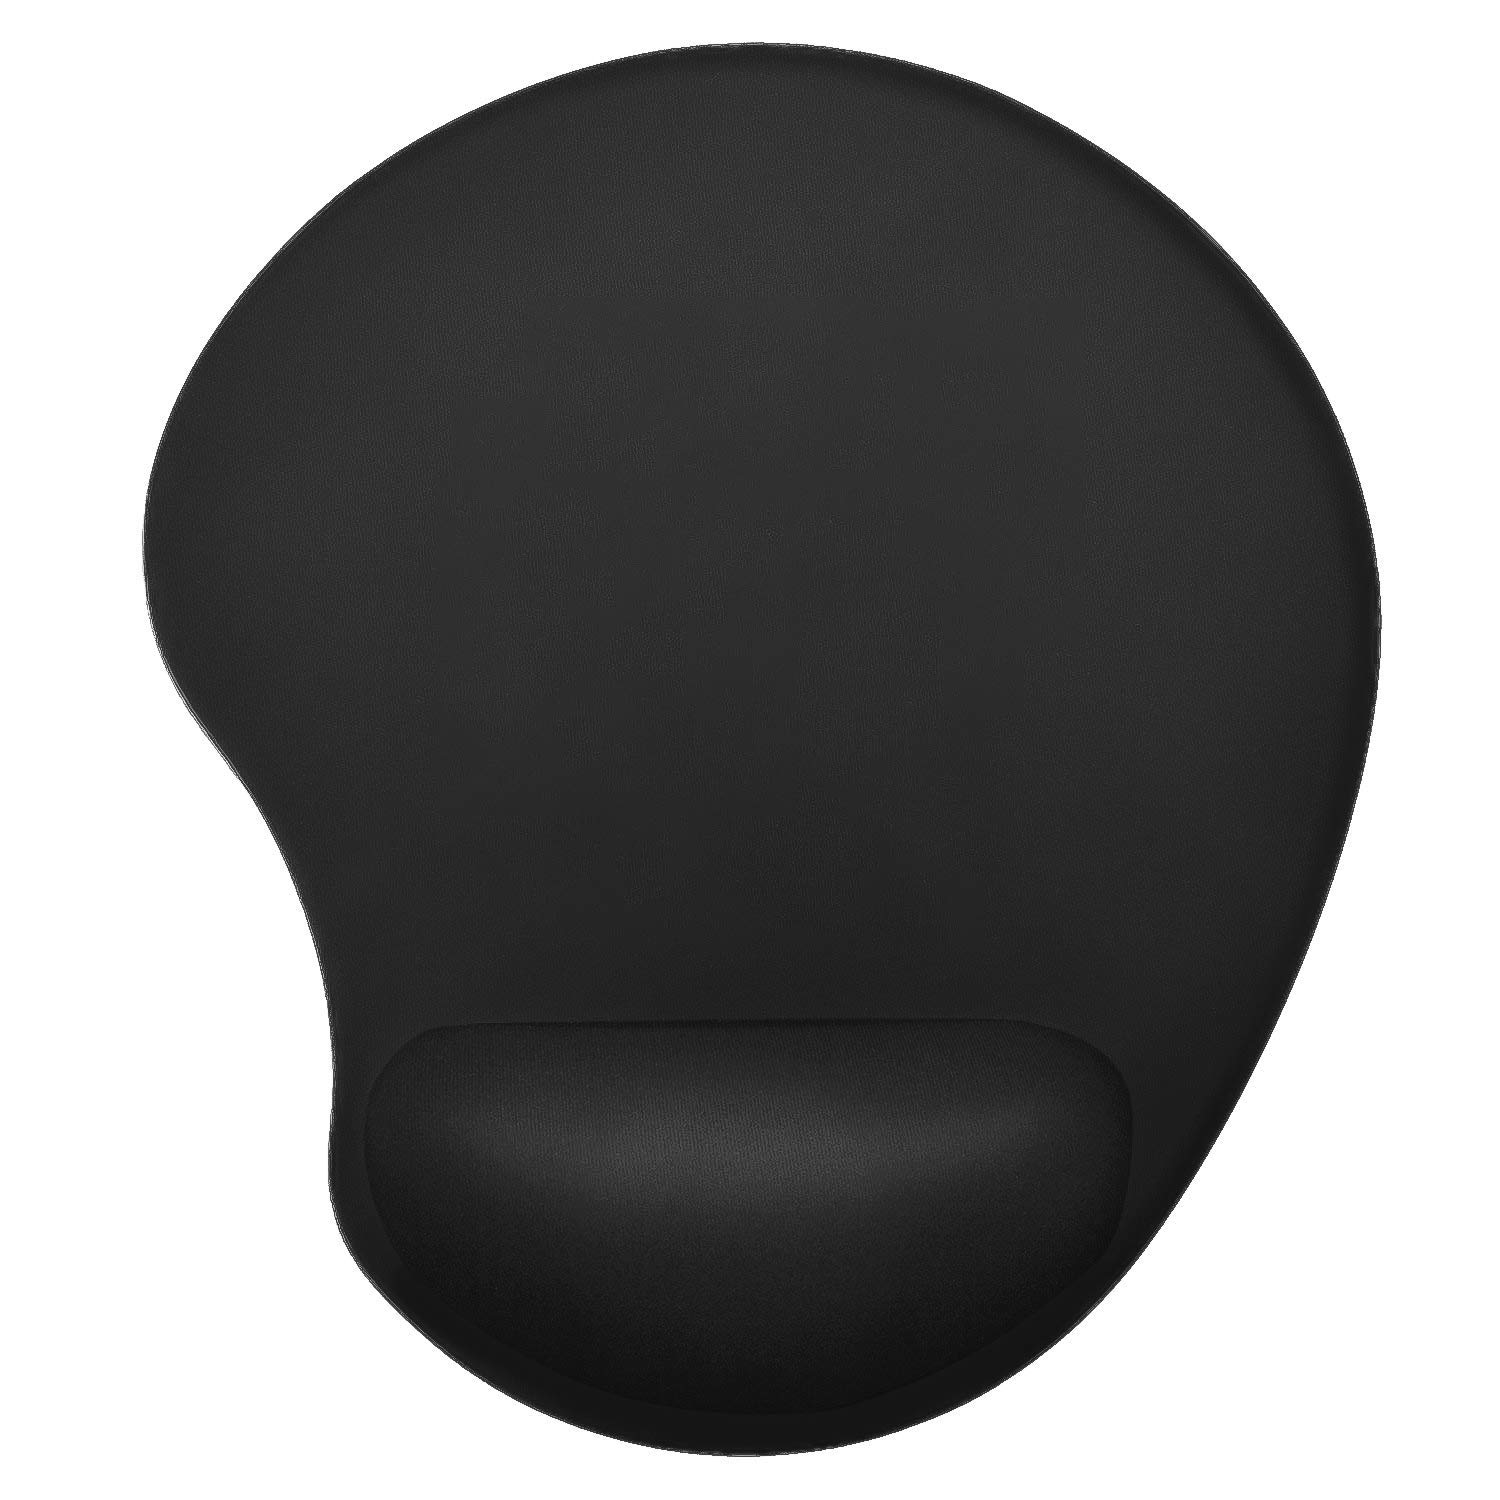 Ktrio Mouse Pad with Wrist Rest, Mousepad with Wrist Support Wrist Pad Ergonomic Cushion Support Mouse Mat Non-Slip Rubber Base Smooth Surface for Home Office Travel 9x7.5 inches Black